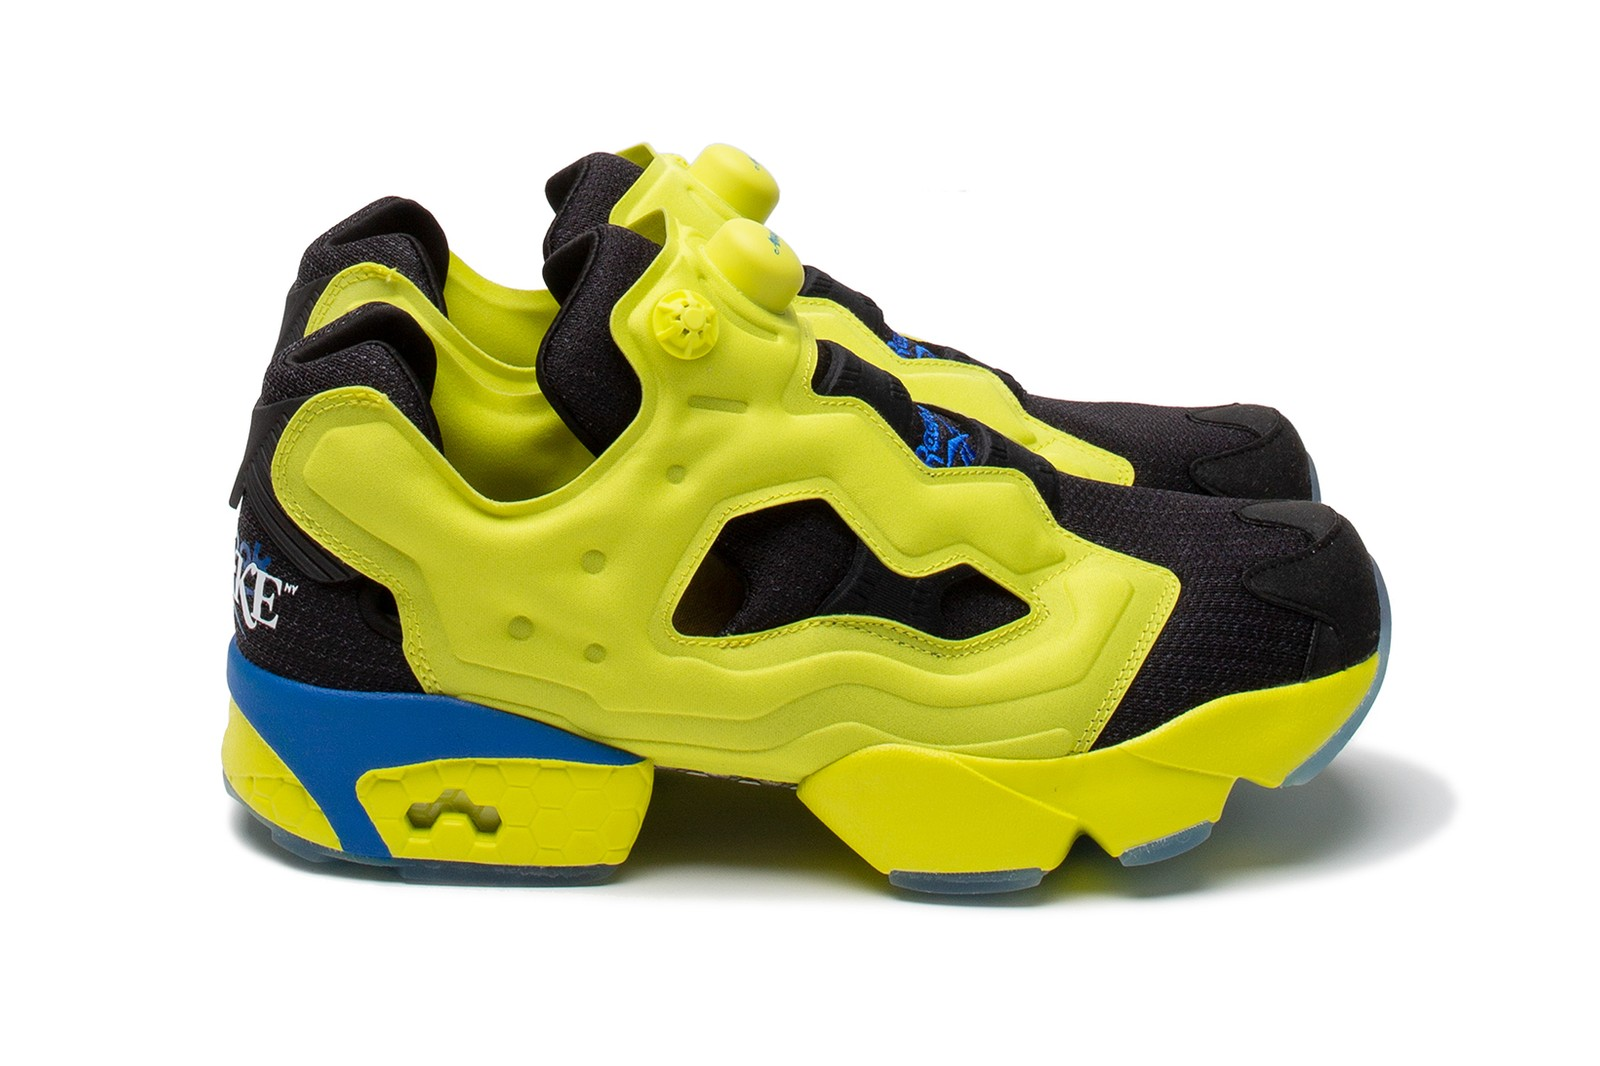 reebok awake ny collaboration workout lo plus instapump fury sneakers white neon yellow blue black footwear shoes sneakerhead